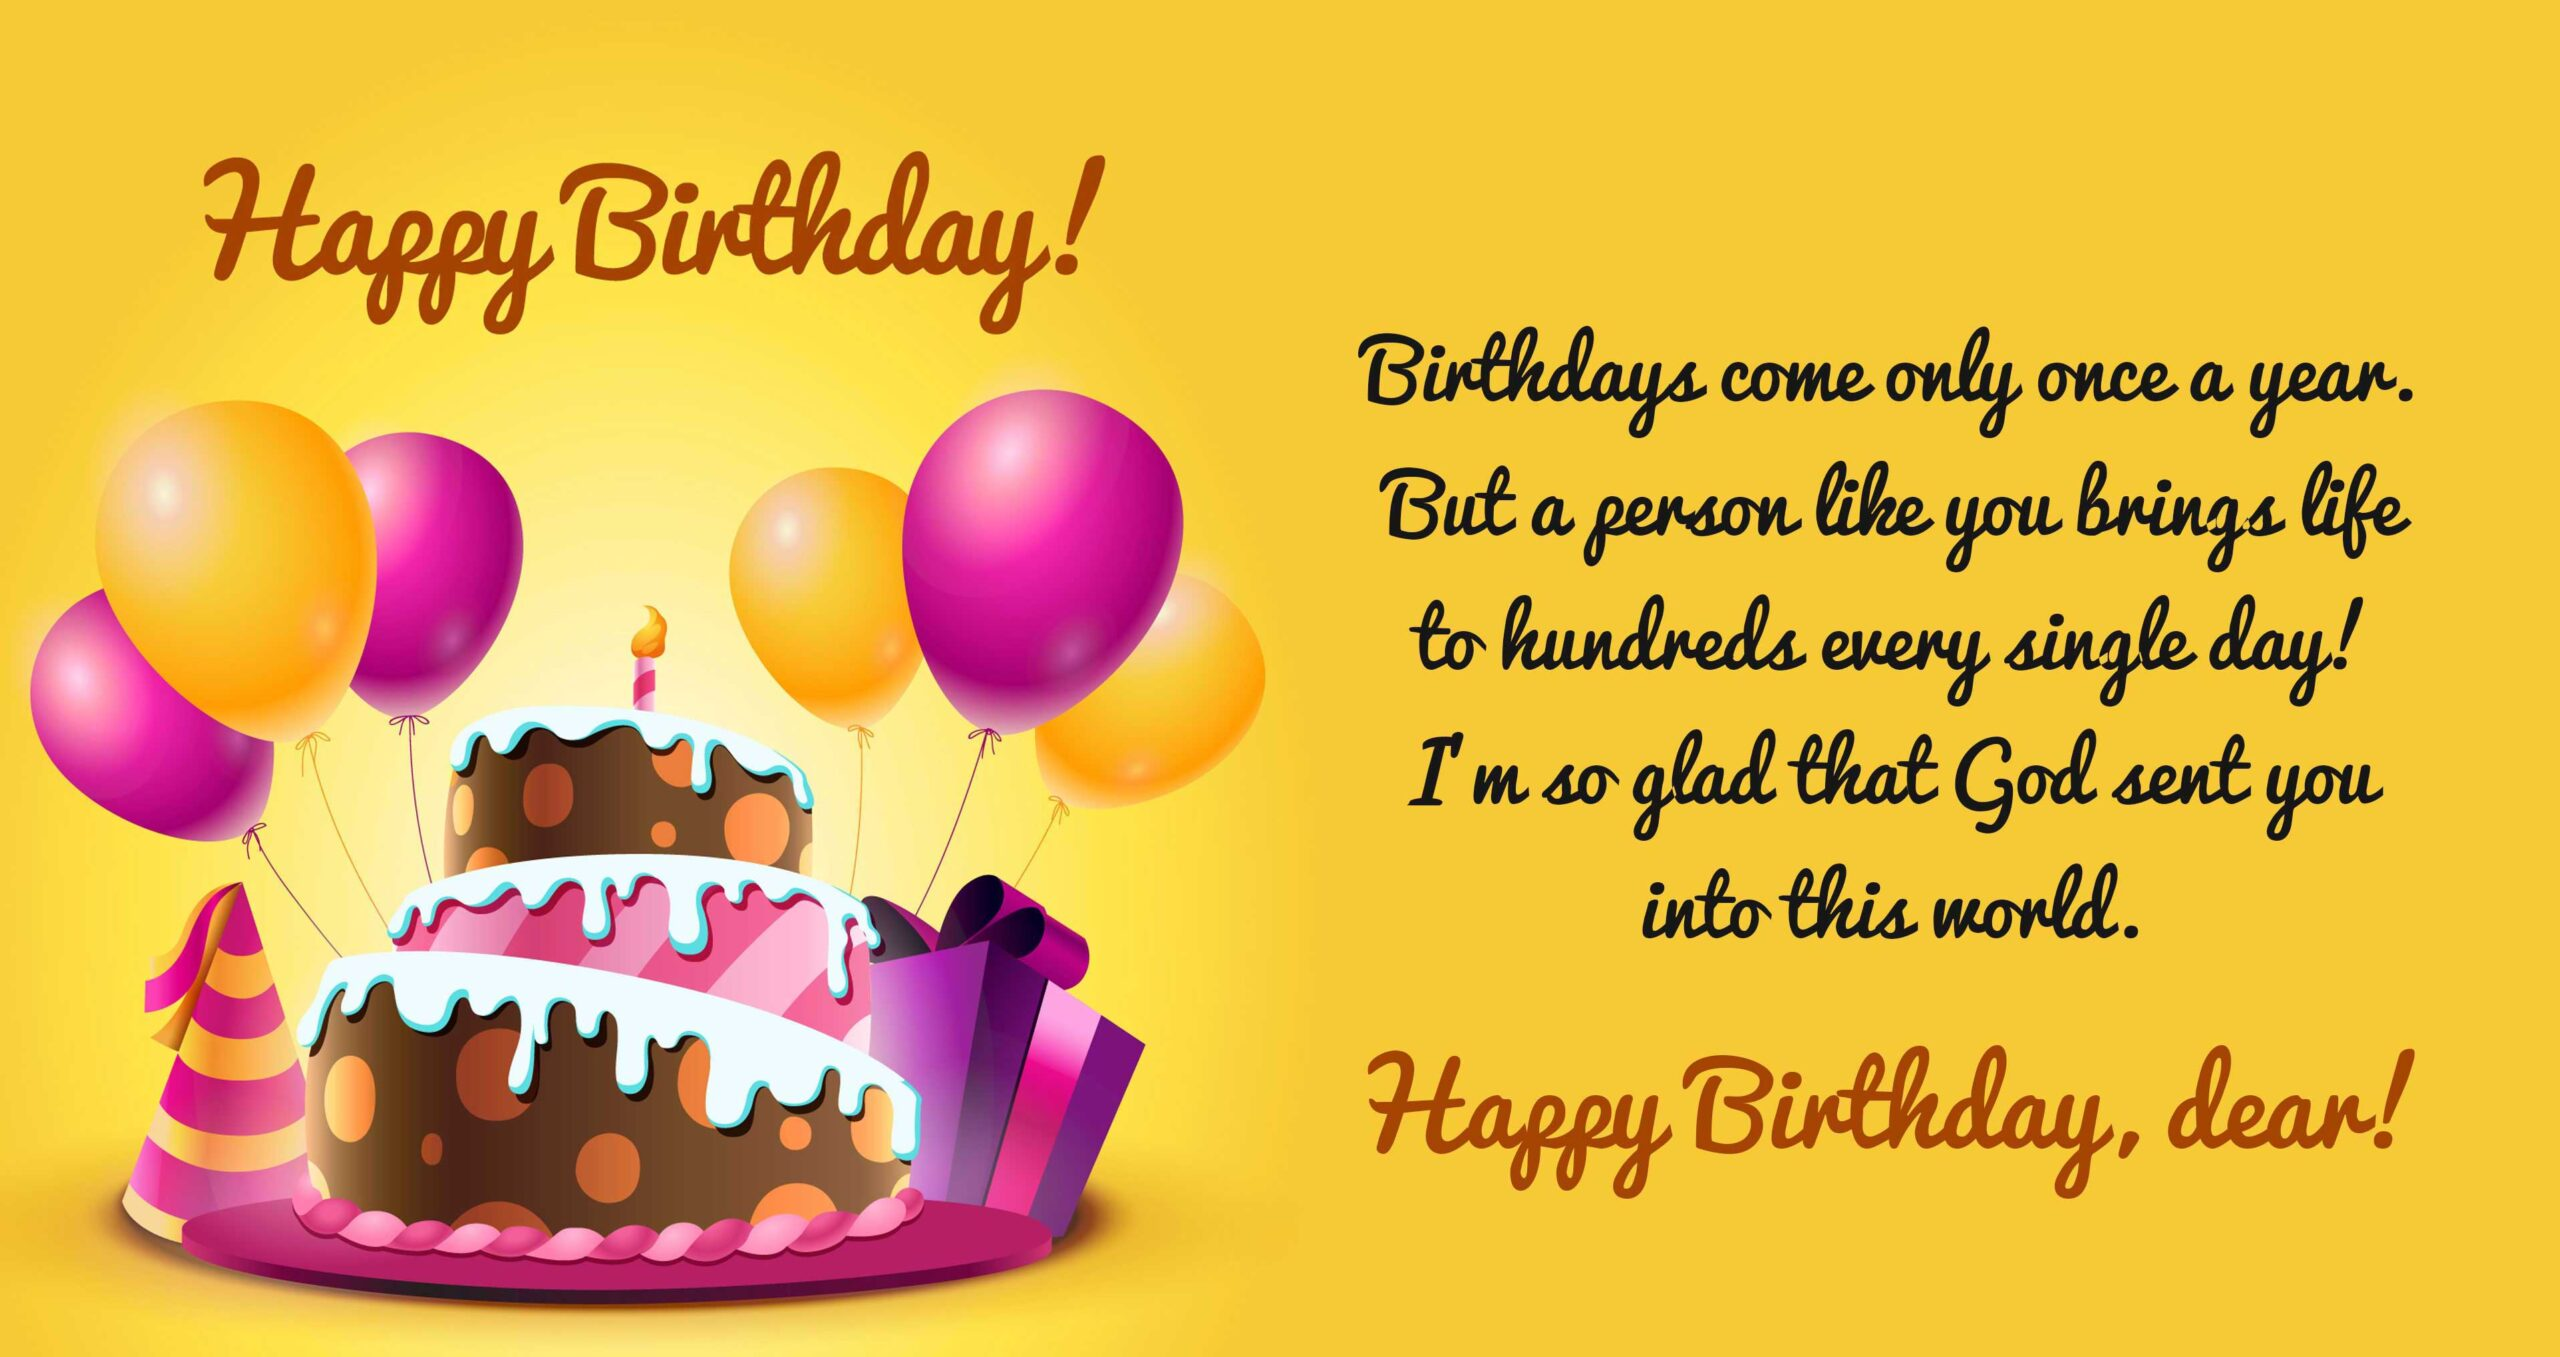 Happy Birthday Quotes | Withlovenregards Blog - Ideas ...Happy Birthday To Me Quotes For Facebook